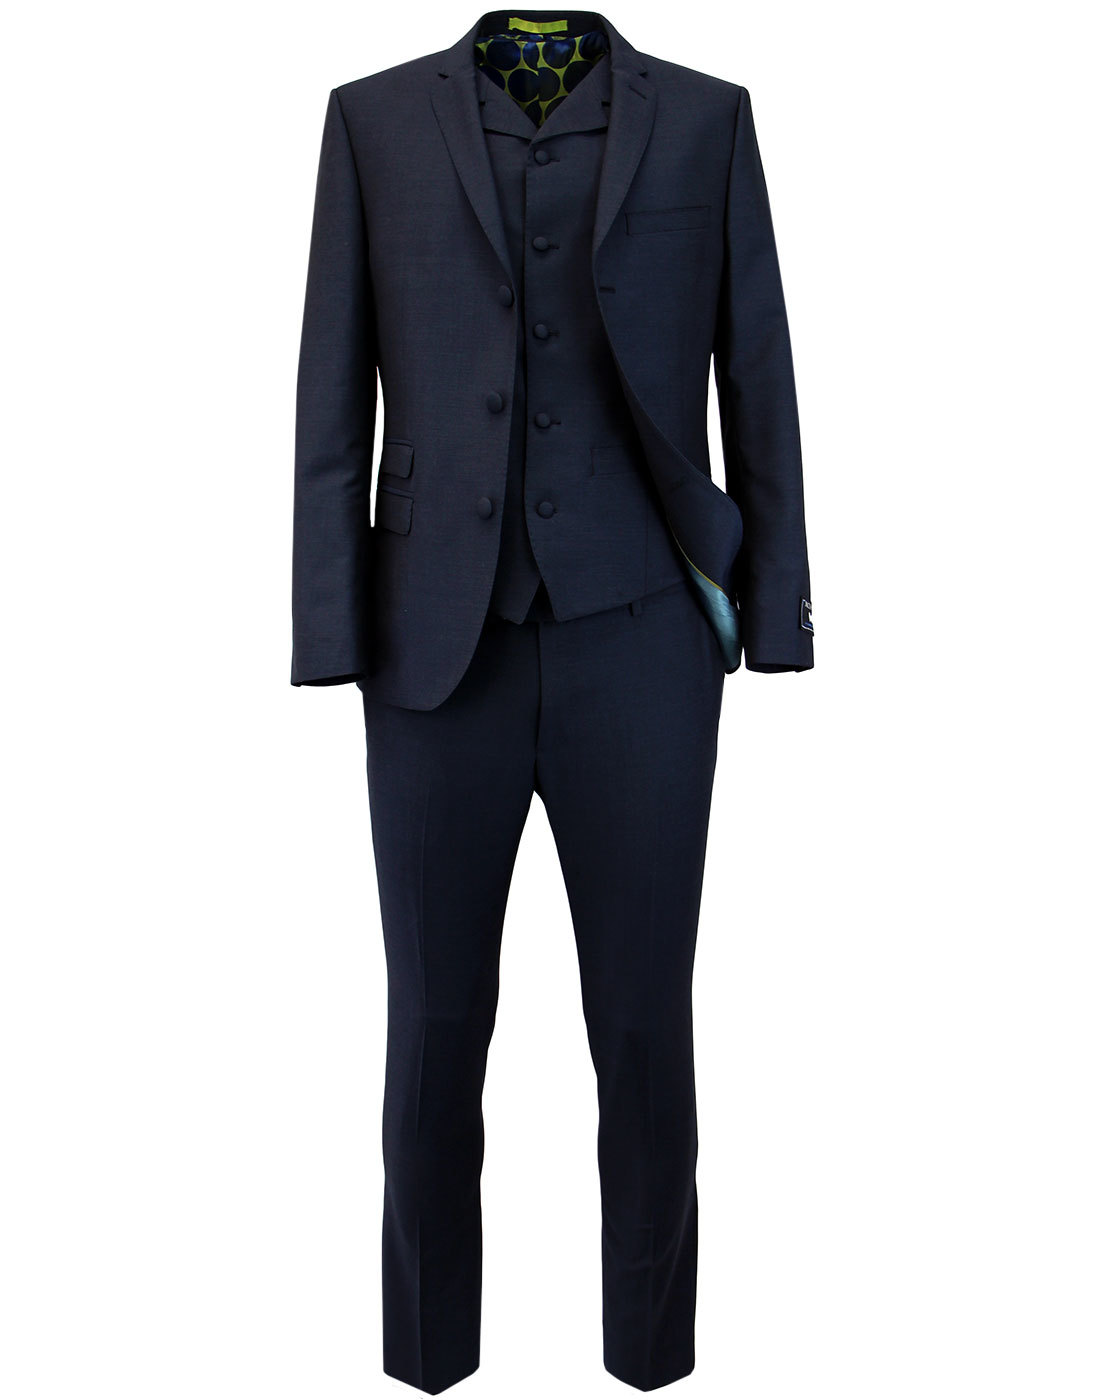 MADCAP ENGLAND Mod Mohair Tonic Suit in Navy